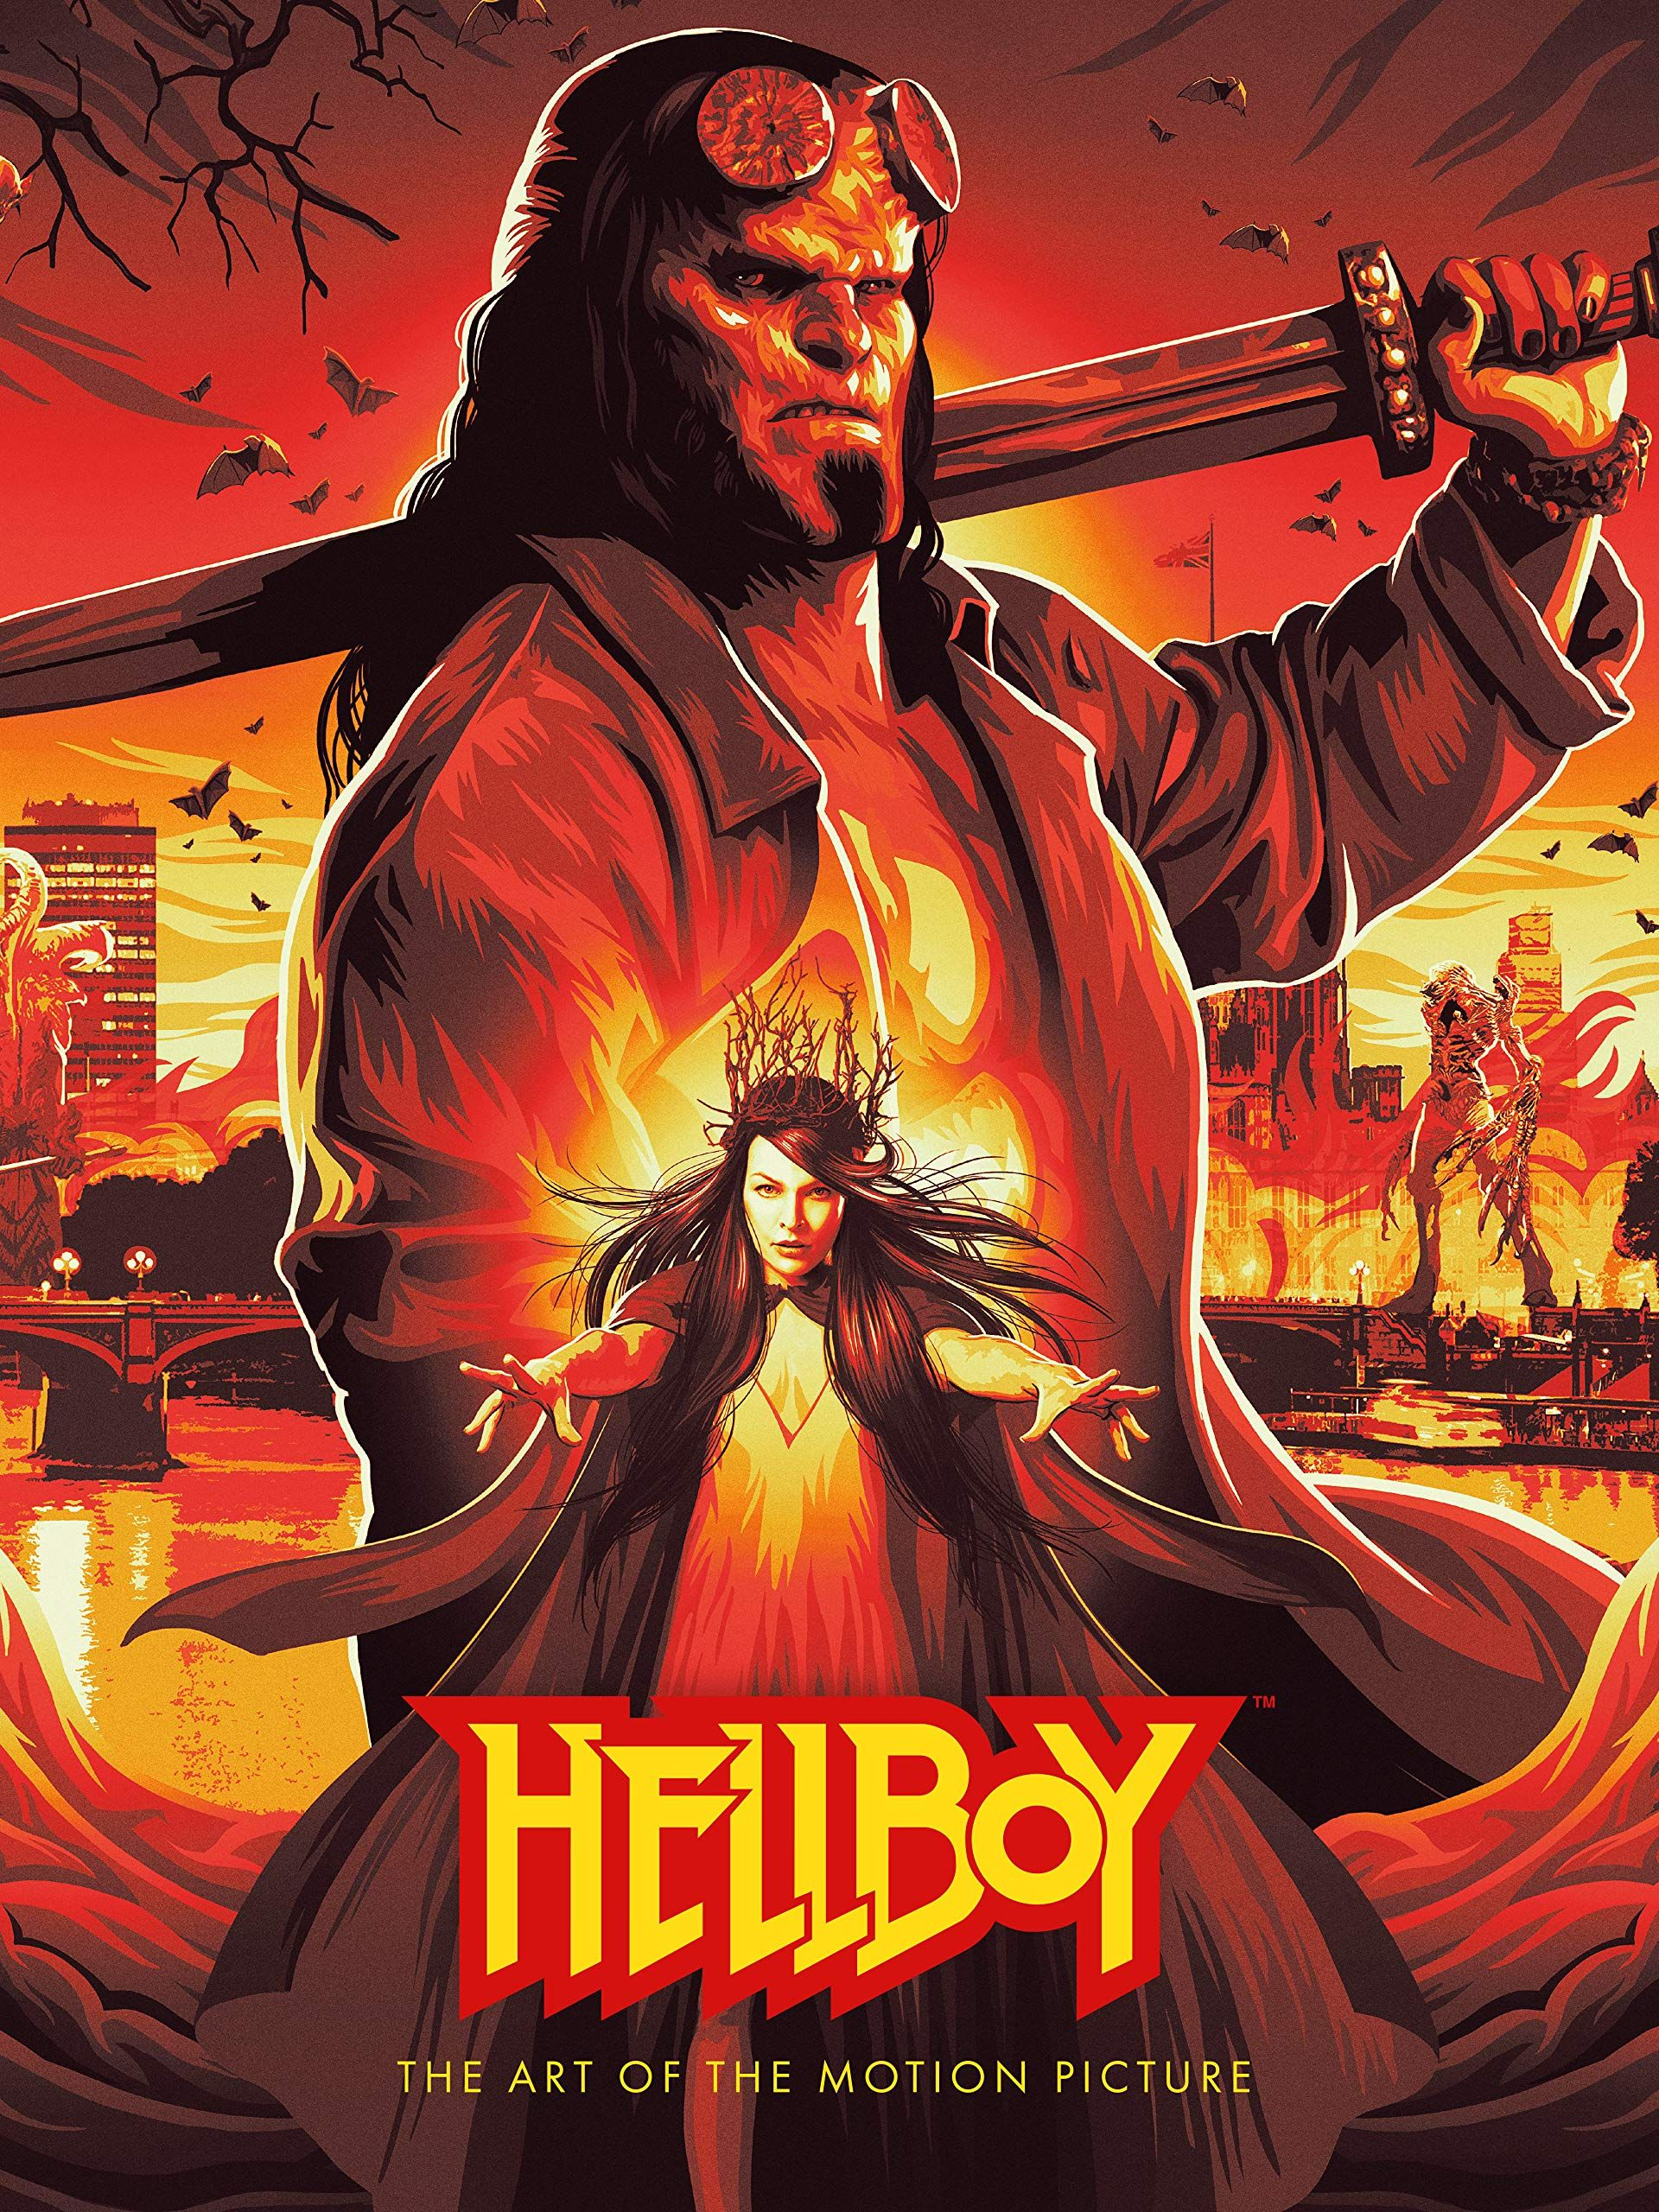 Hellboy The Art of The Motion Picture (2019) Hardcover